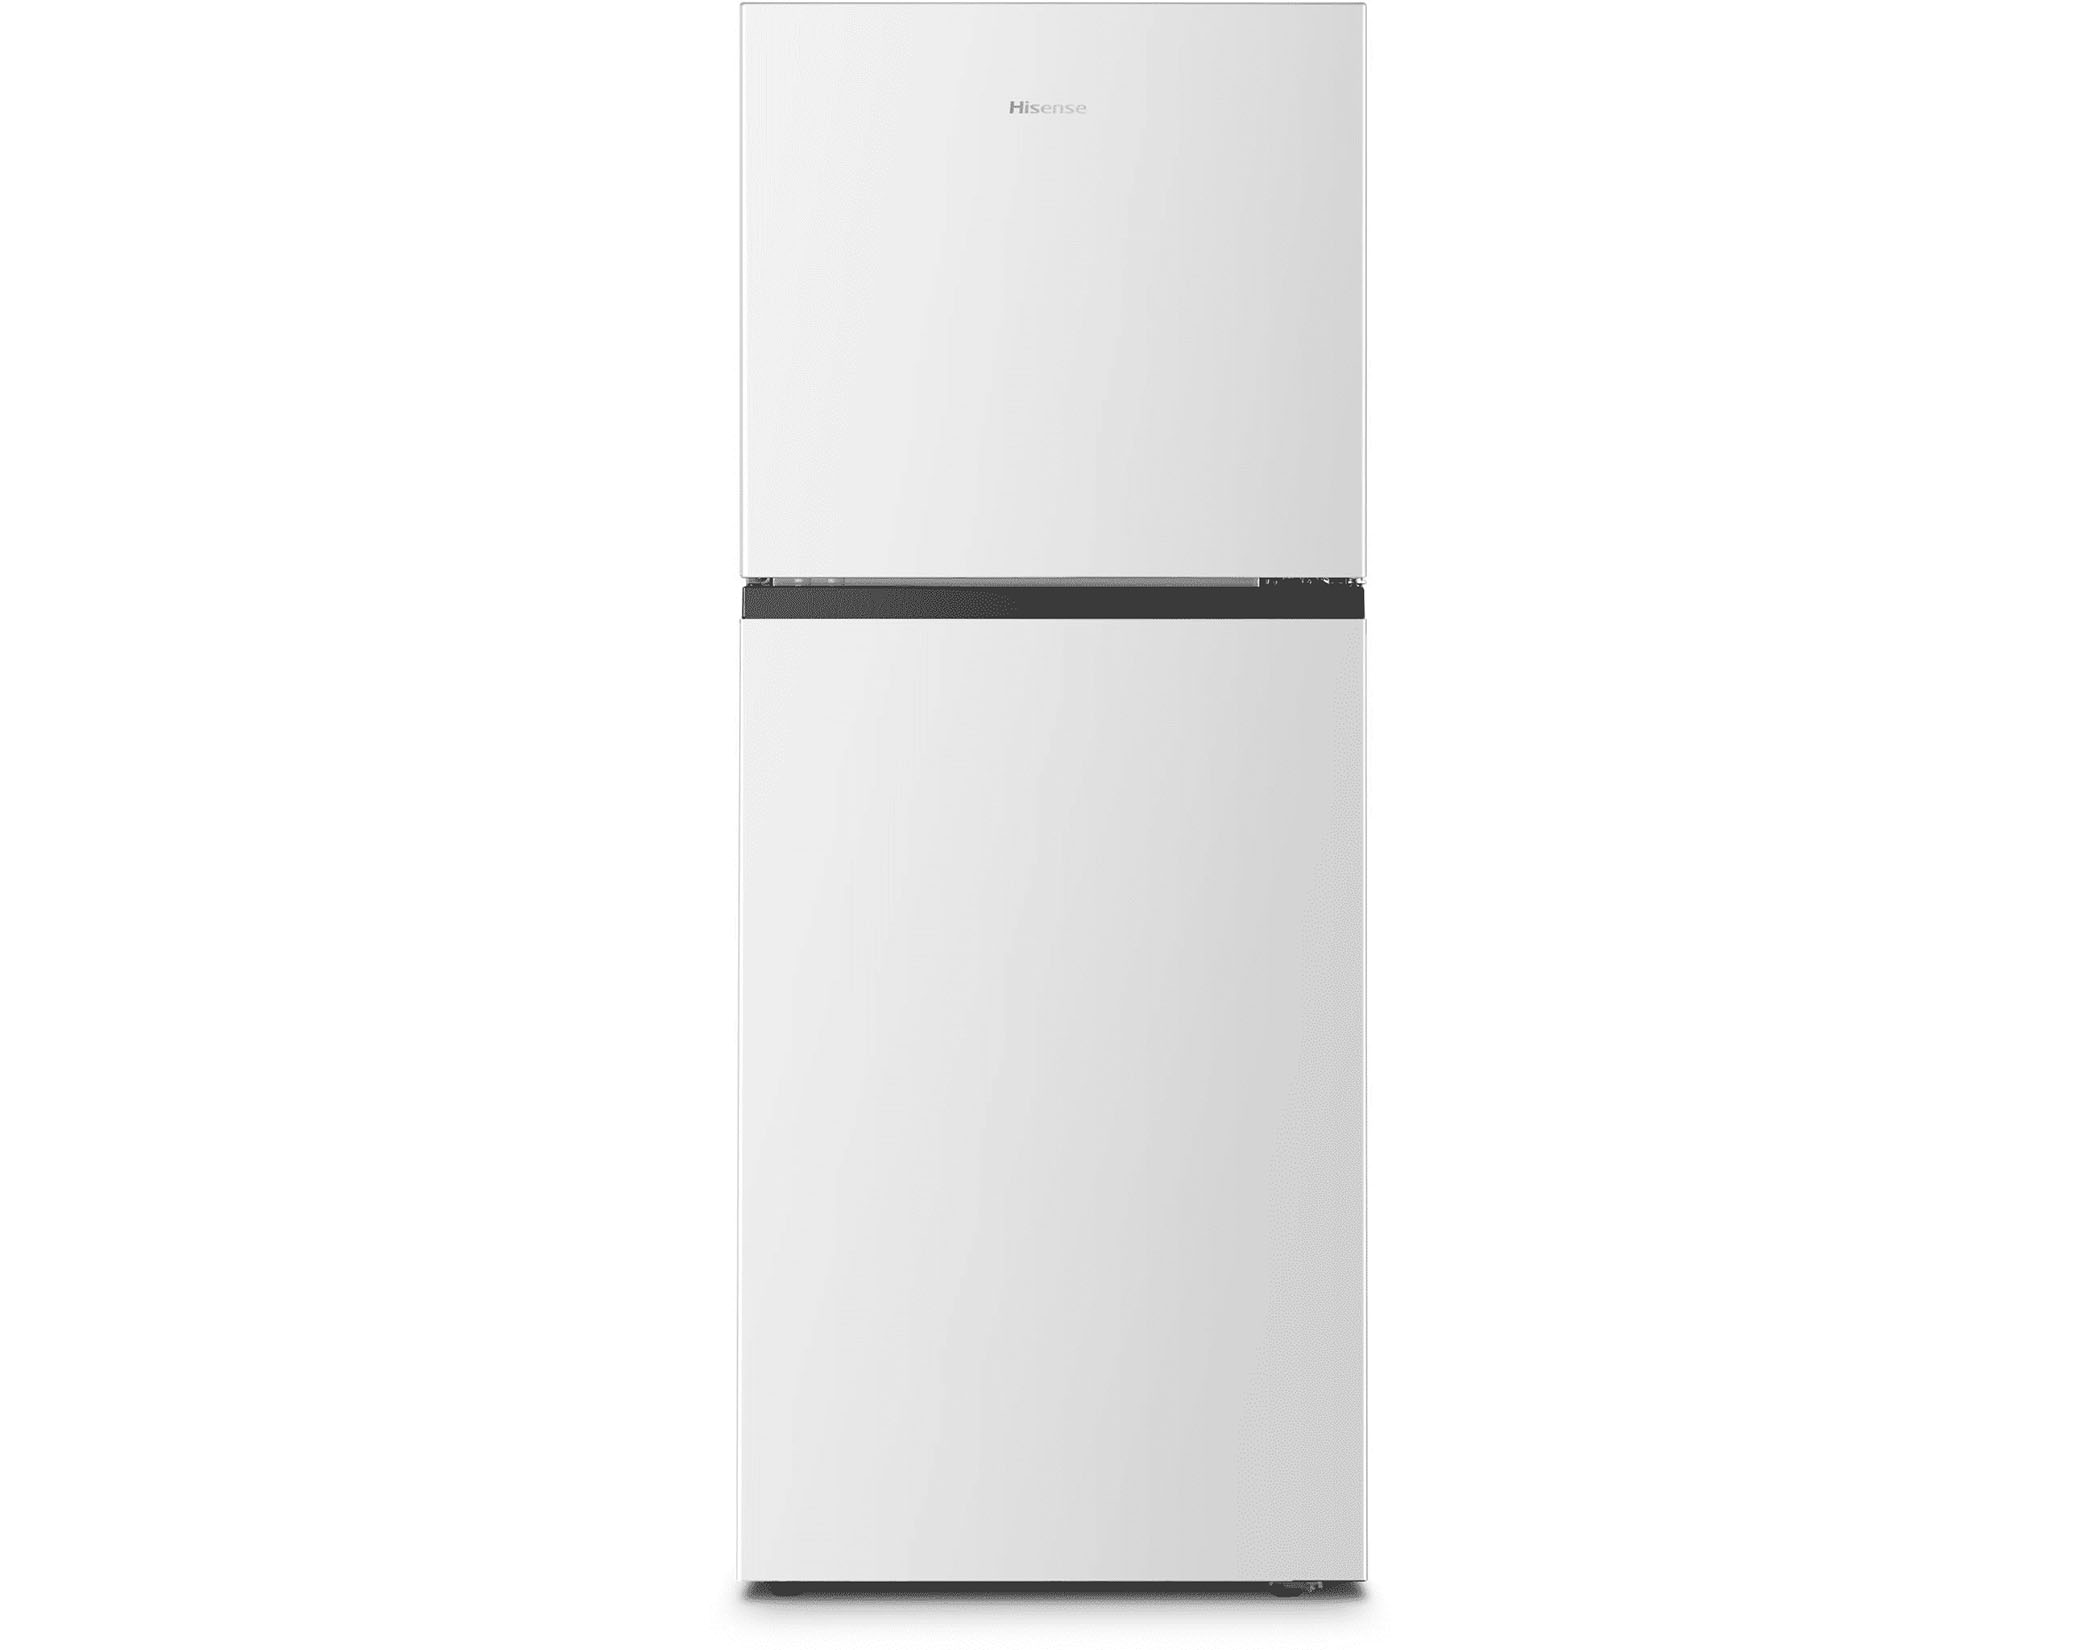 Hisense HR6TFF223 White 223L Top Mount Fridge-main